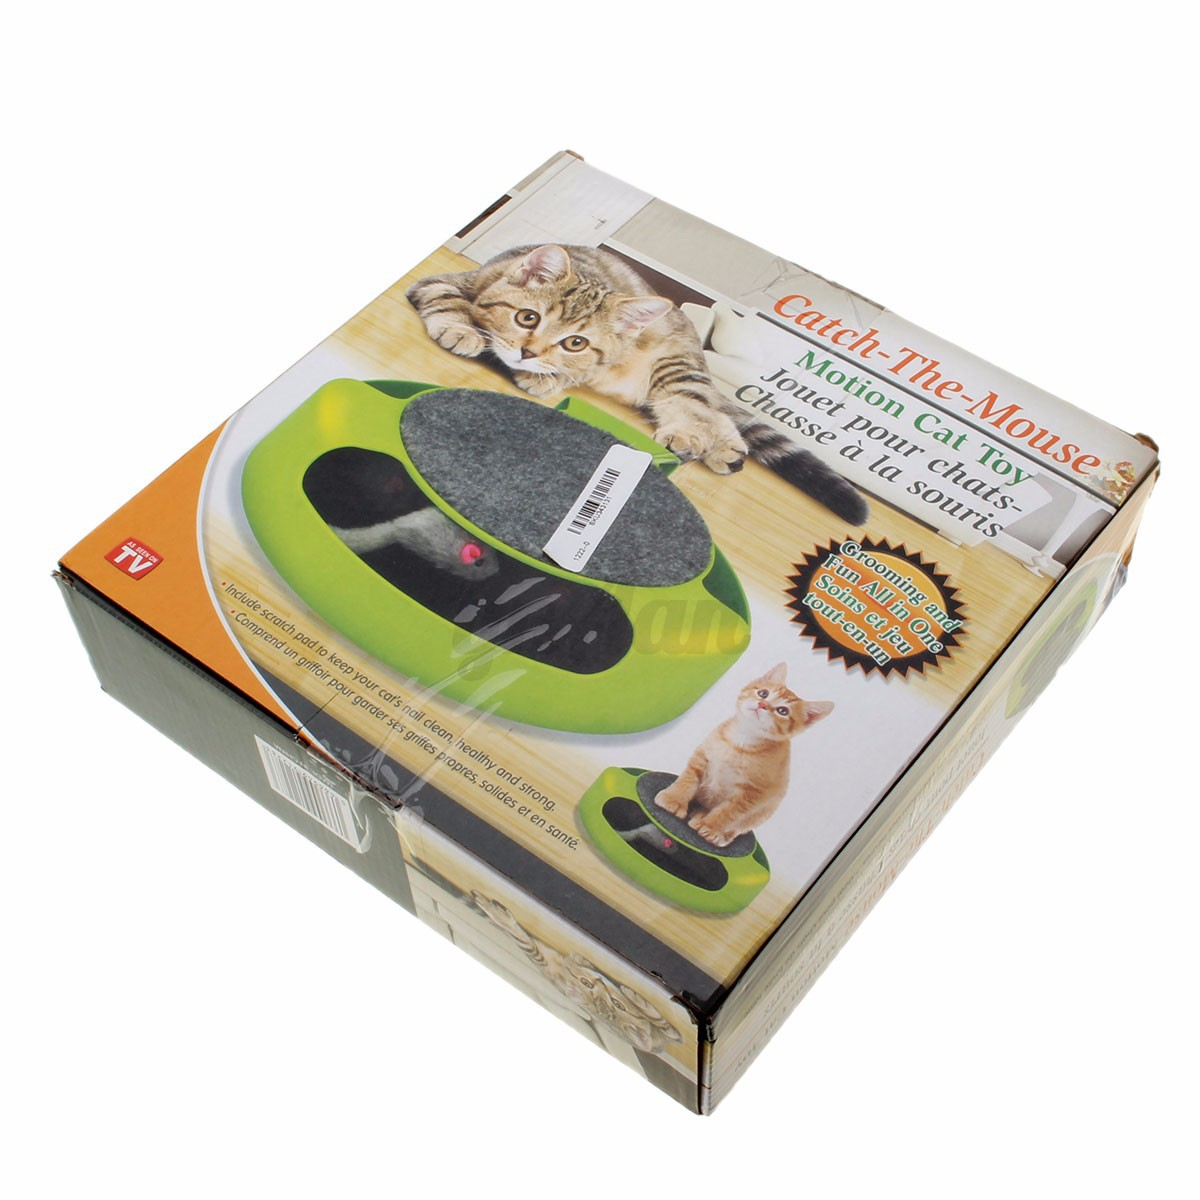 141871889814 on cats scratching scratch pad